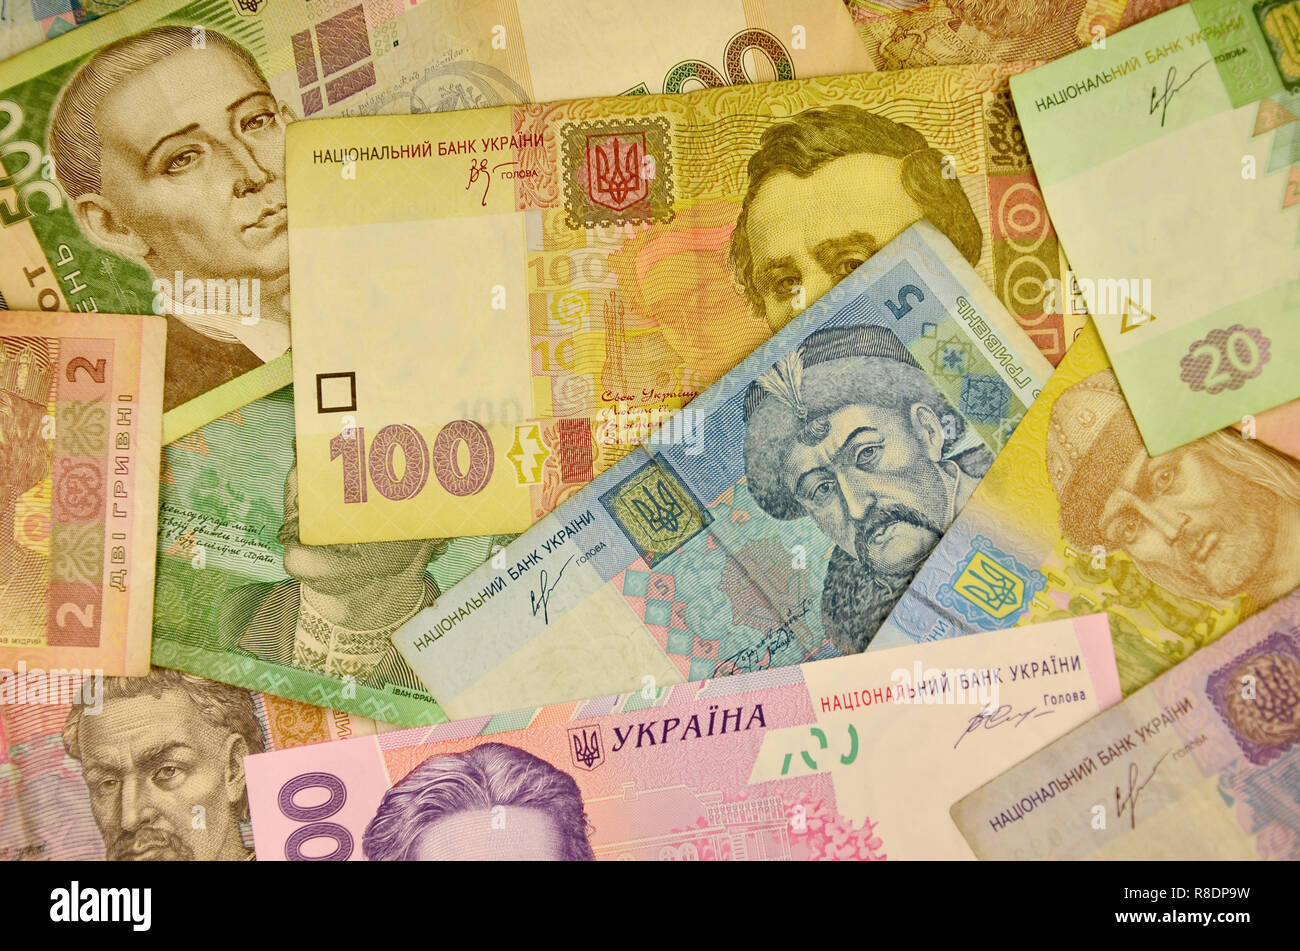 Many Ukrainian money bills of various denominations and colors. Ukrainian banknotes with portraits of historical and cultural figures and historical i - Stock Image